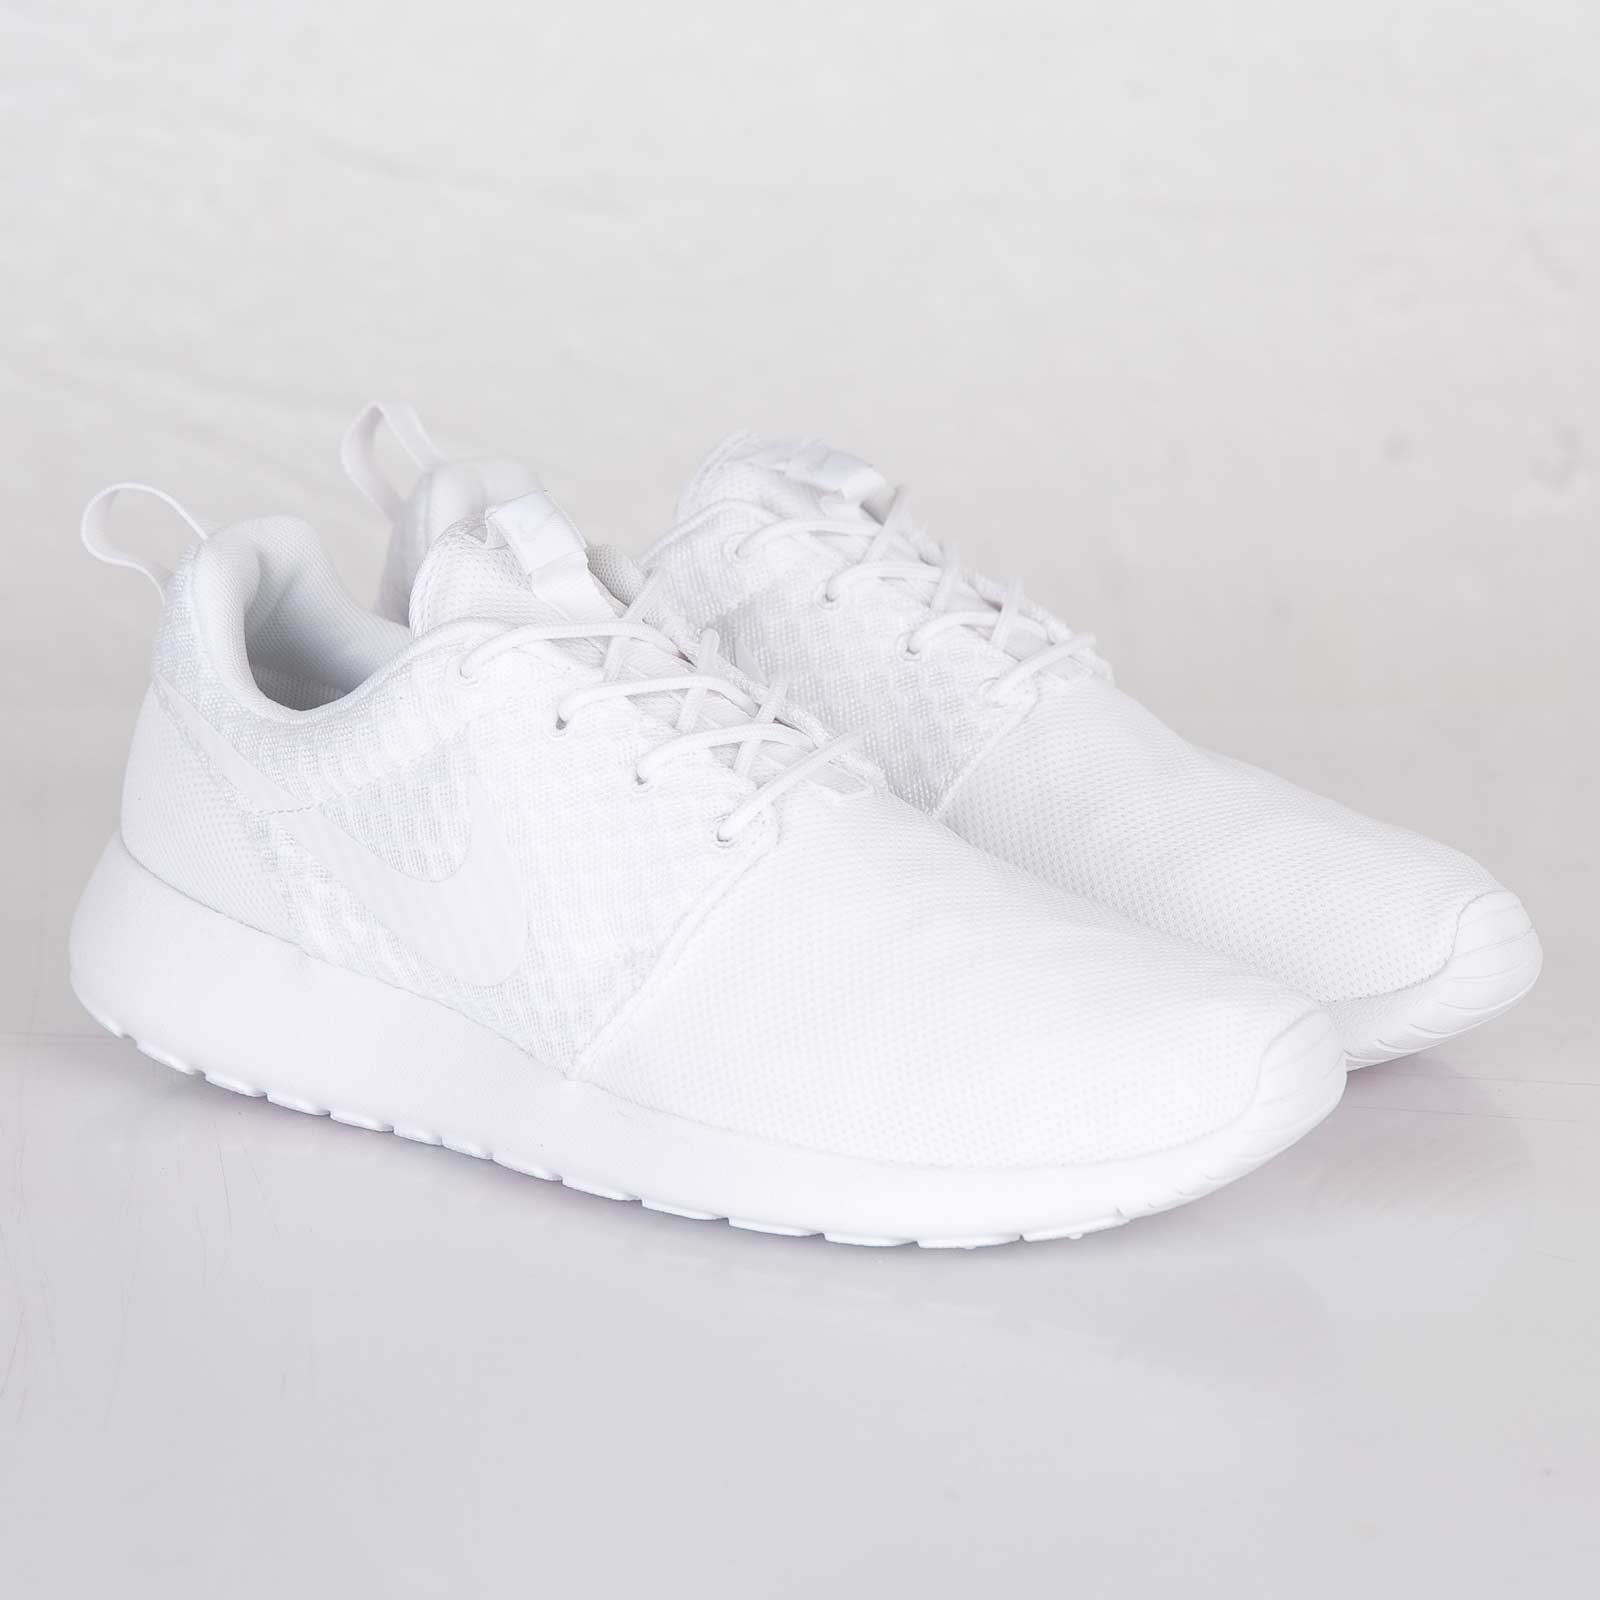 best service 7ea03 37043 roshe run dam vit. Nike Roshe Run